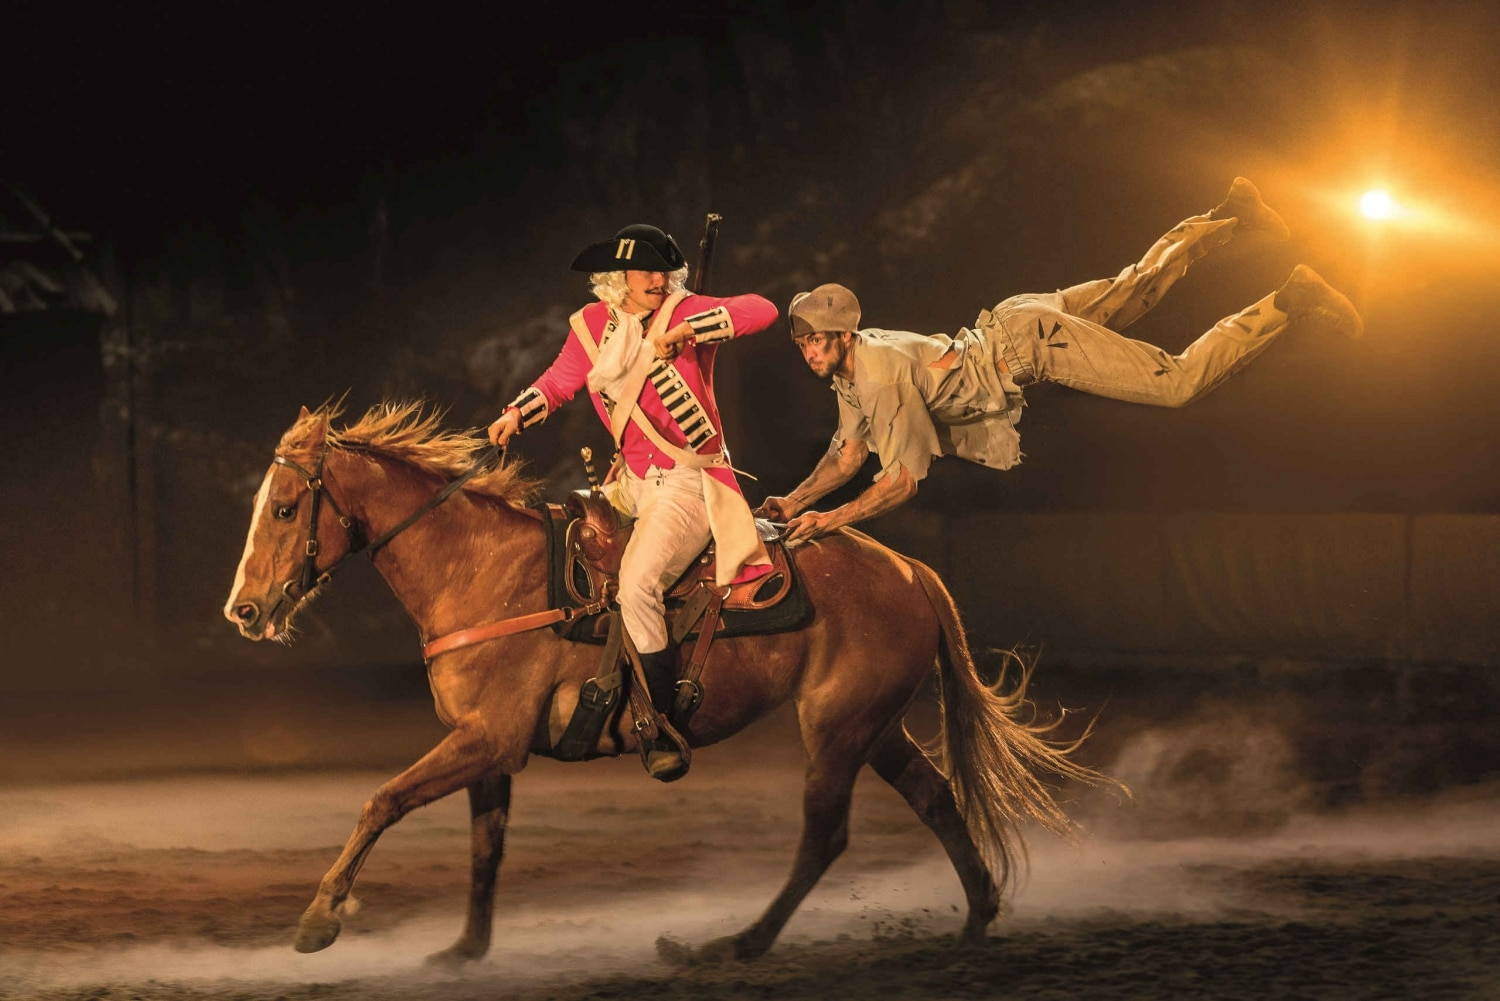 Australian Outback Spectacular performers jumping onto a running horse